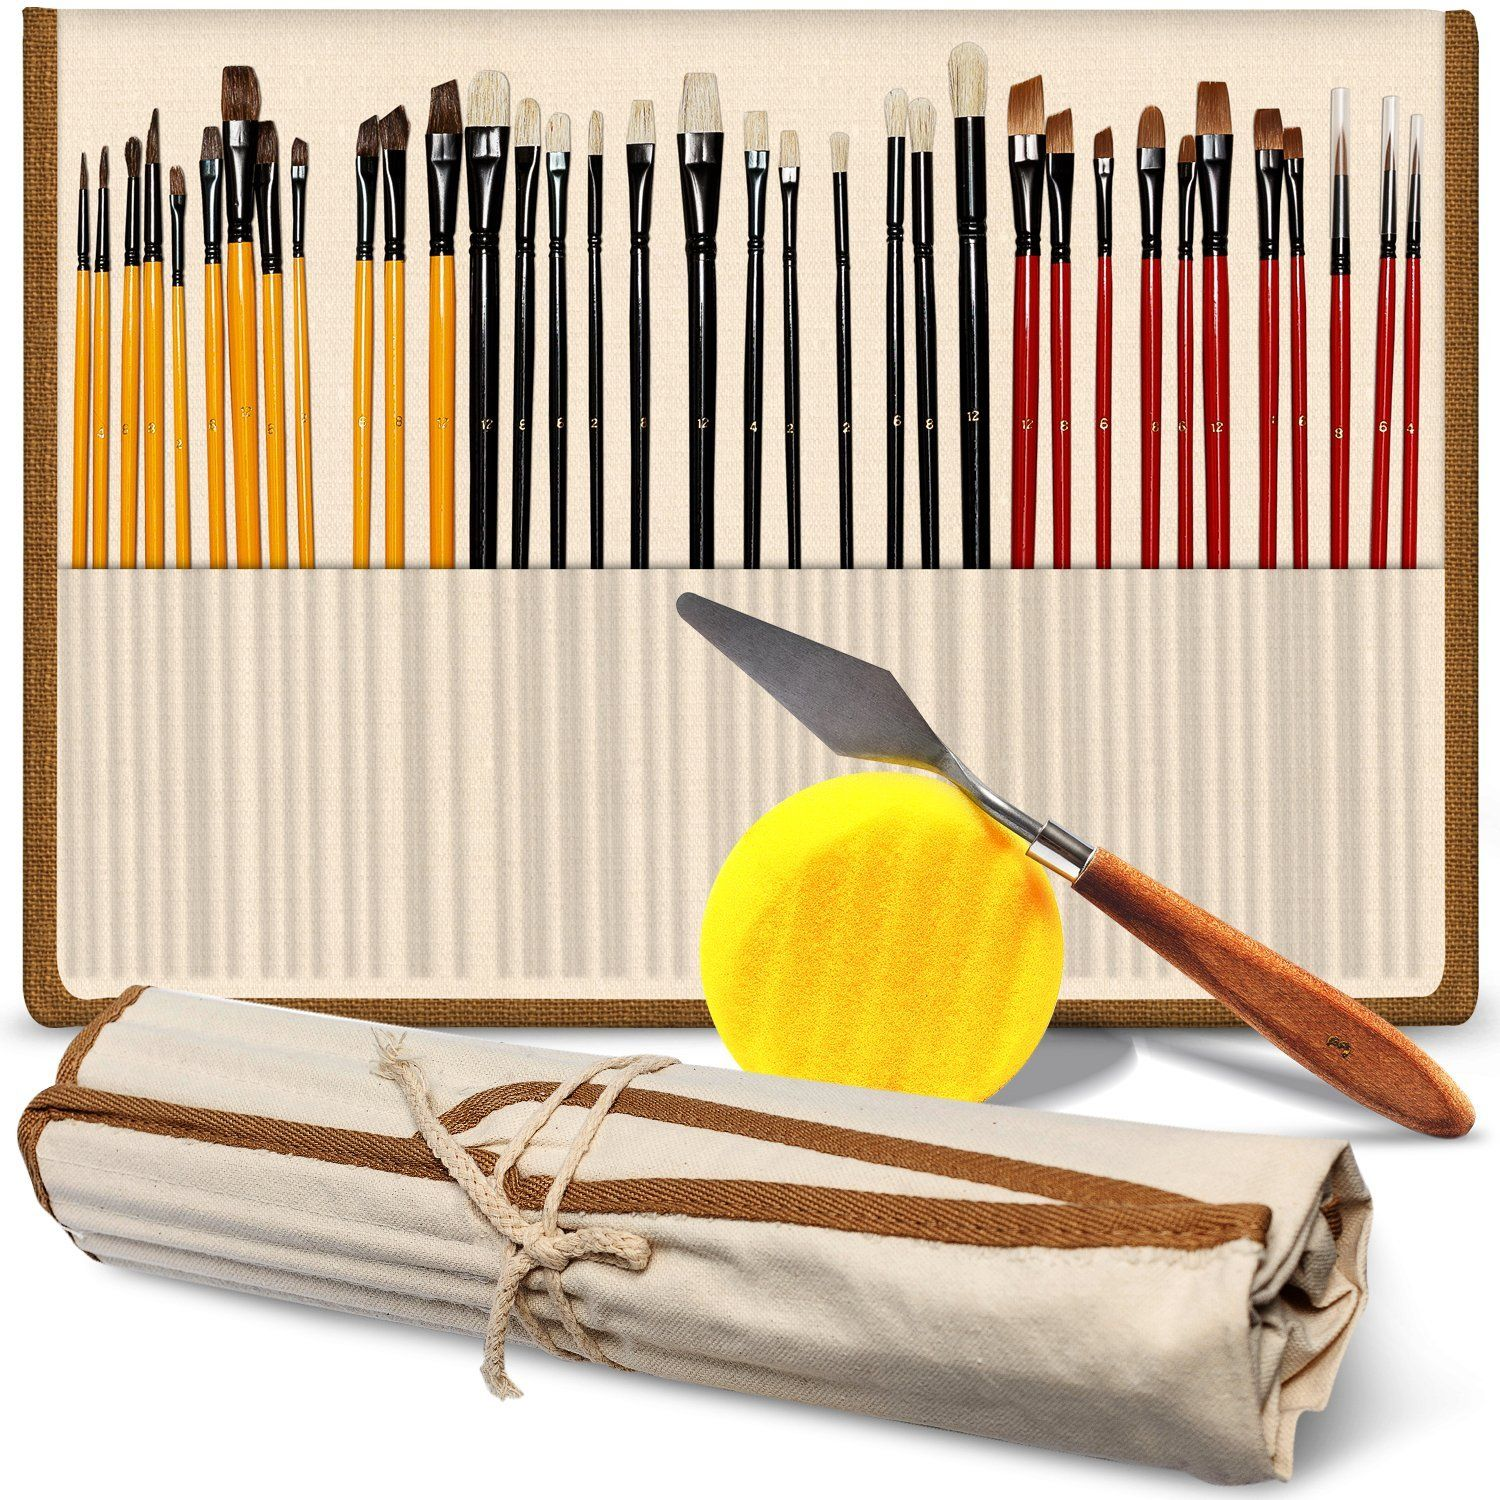 What to Buy for an Artist as a Gift? Gifts for an artist